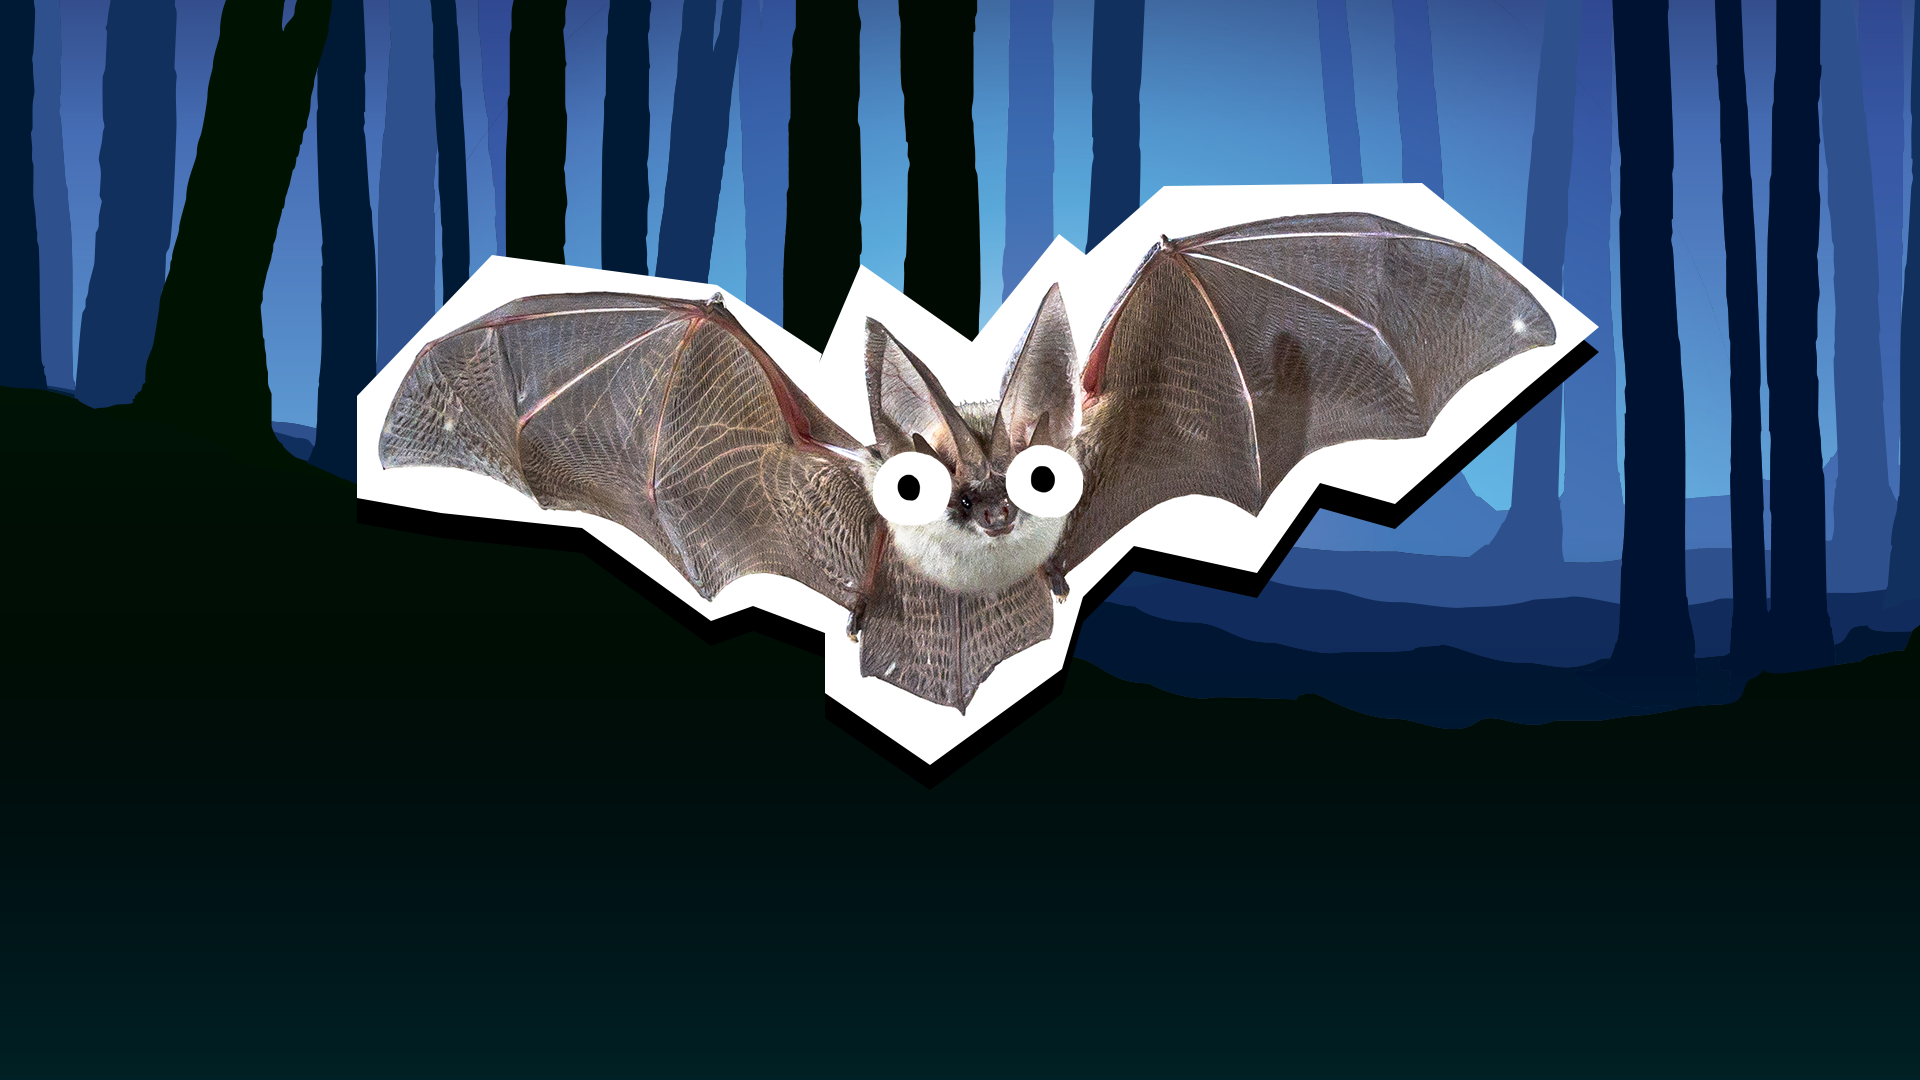 A spooky looking bat flying in a haunted looking forest